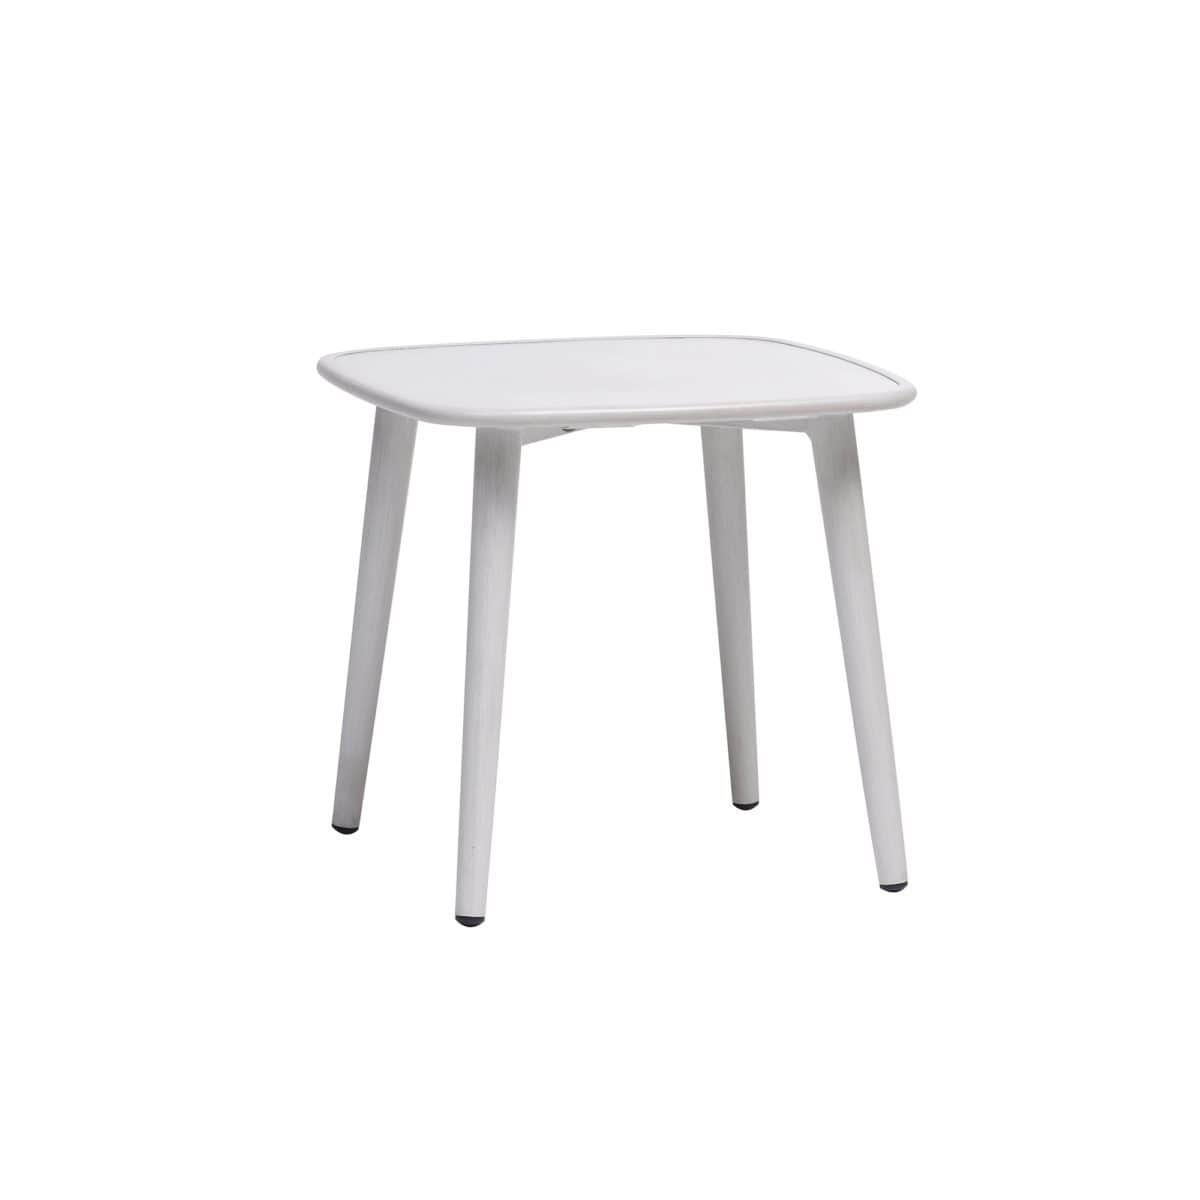 Ratana End Table Grey Poinciana End Table